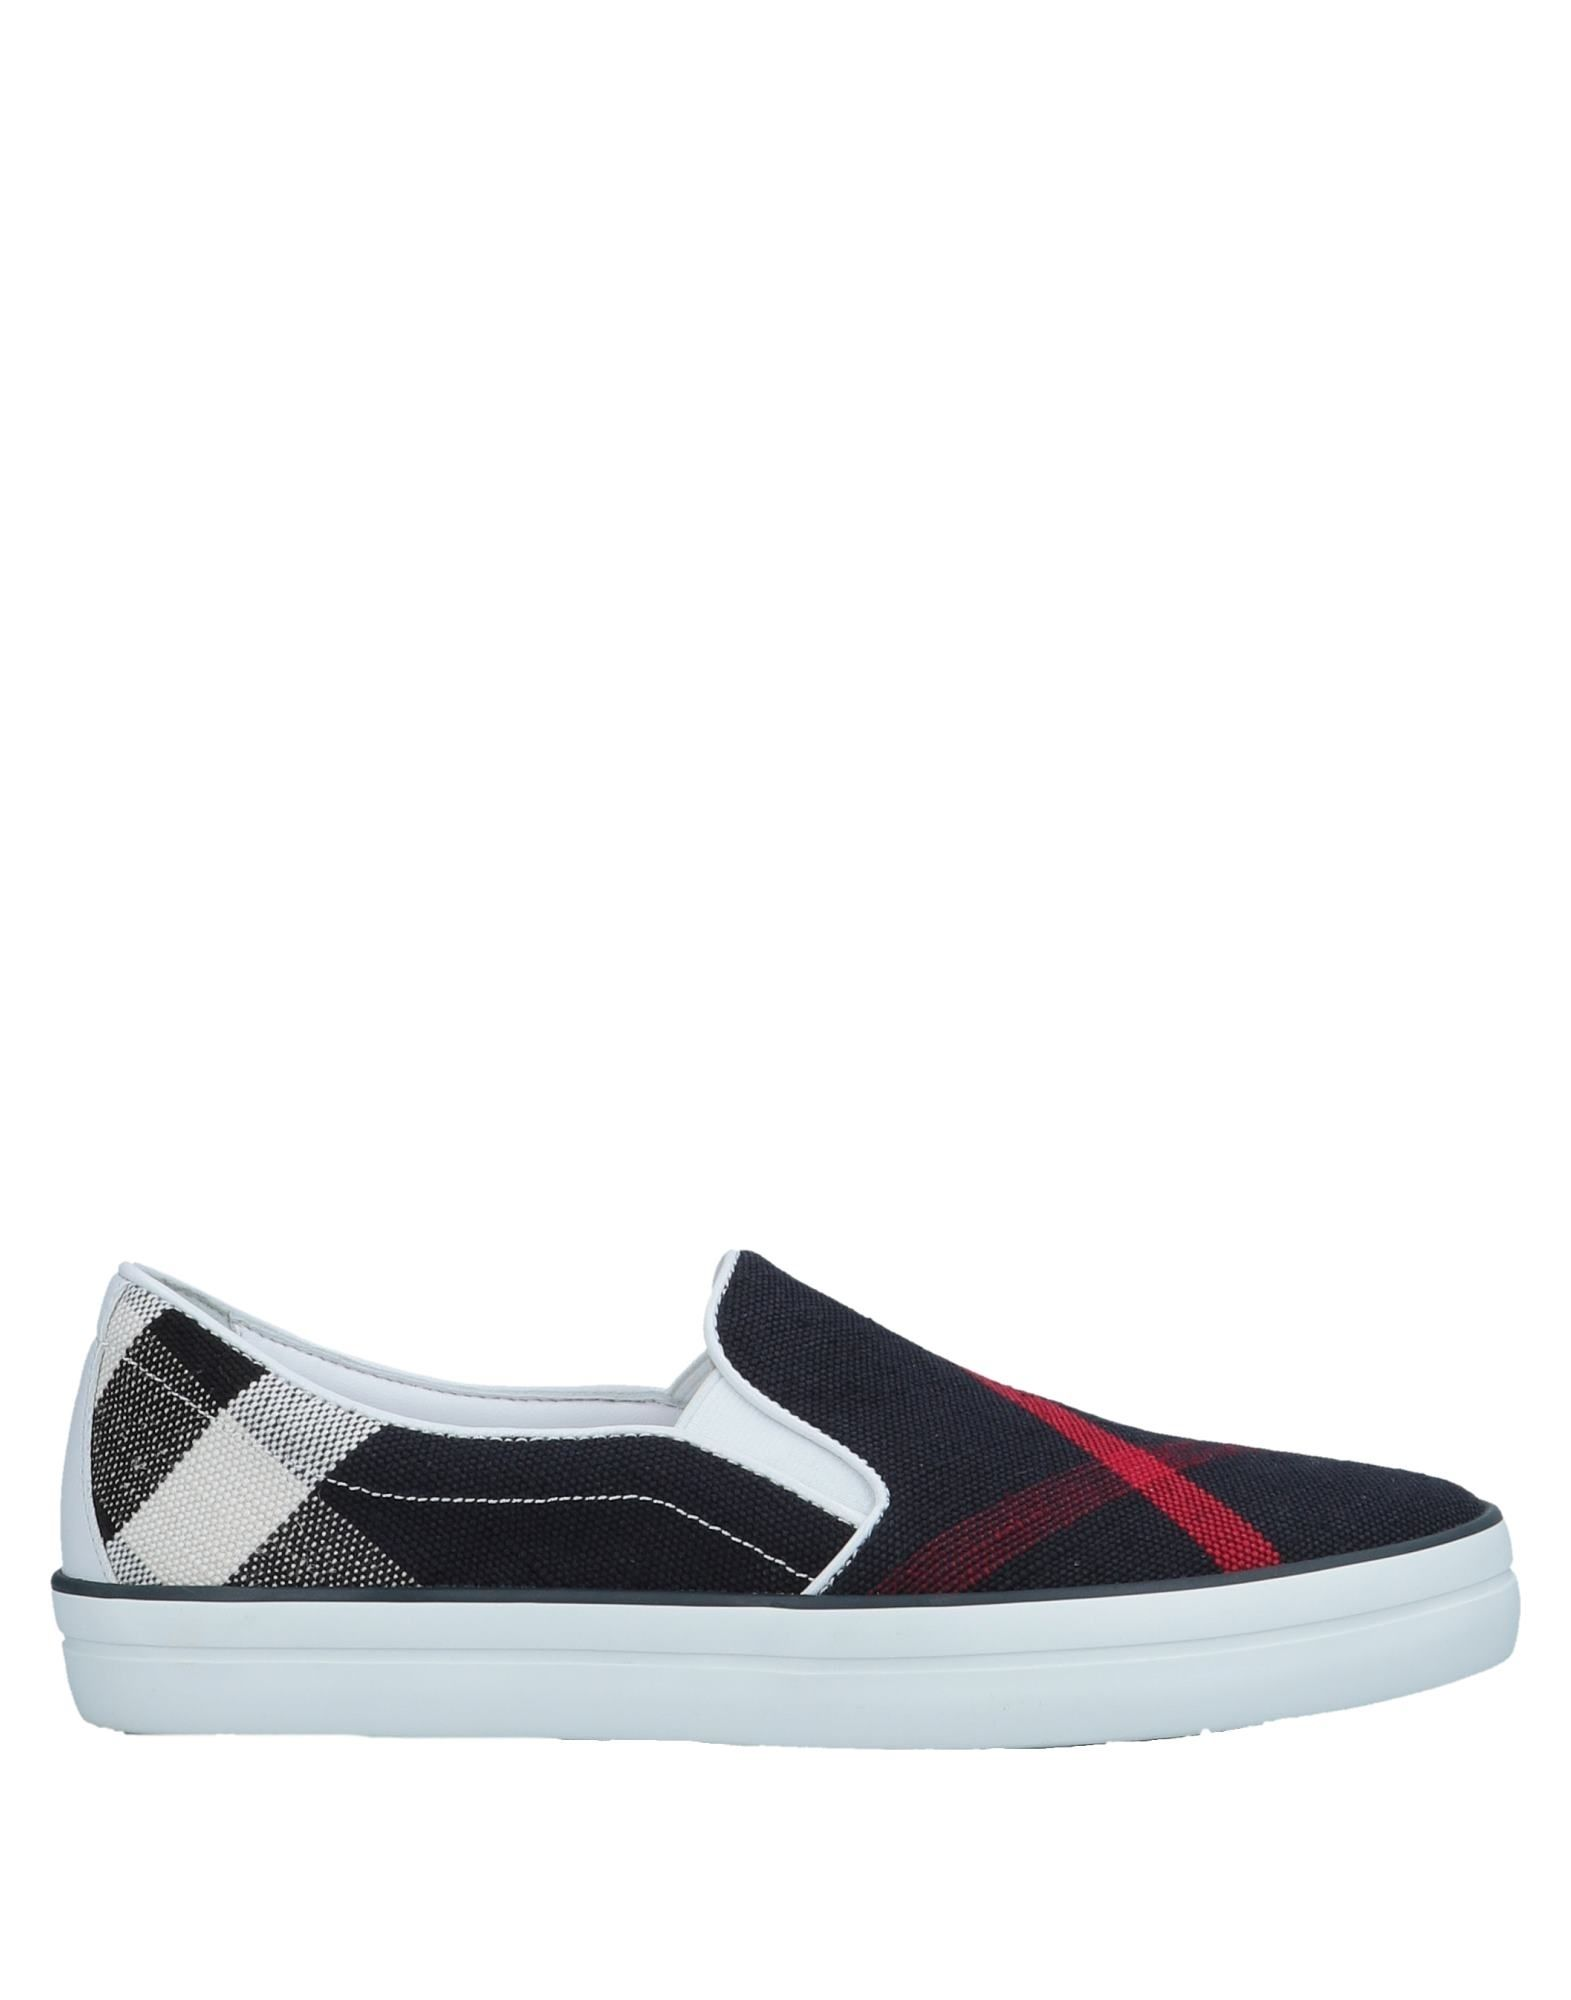 Burberry Sneakers - Women Burberry Sneakers online 11564978SS on  Australia - 11564978SS online af97f7